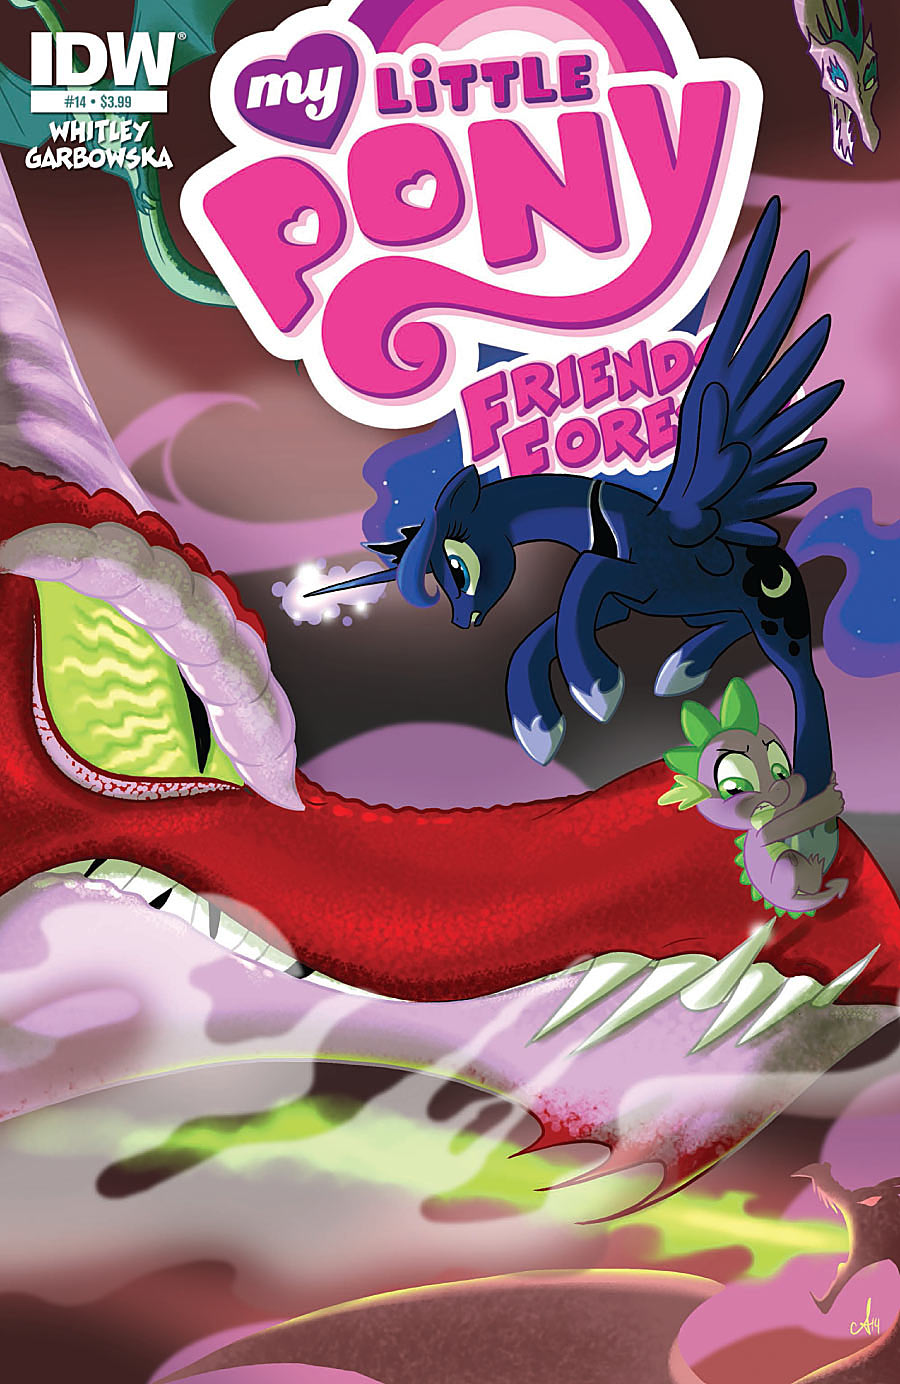 My Little Pony Friends Forever 14 cover brony.com